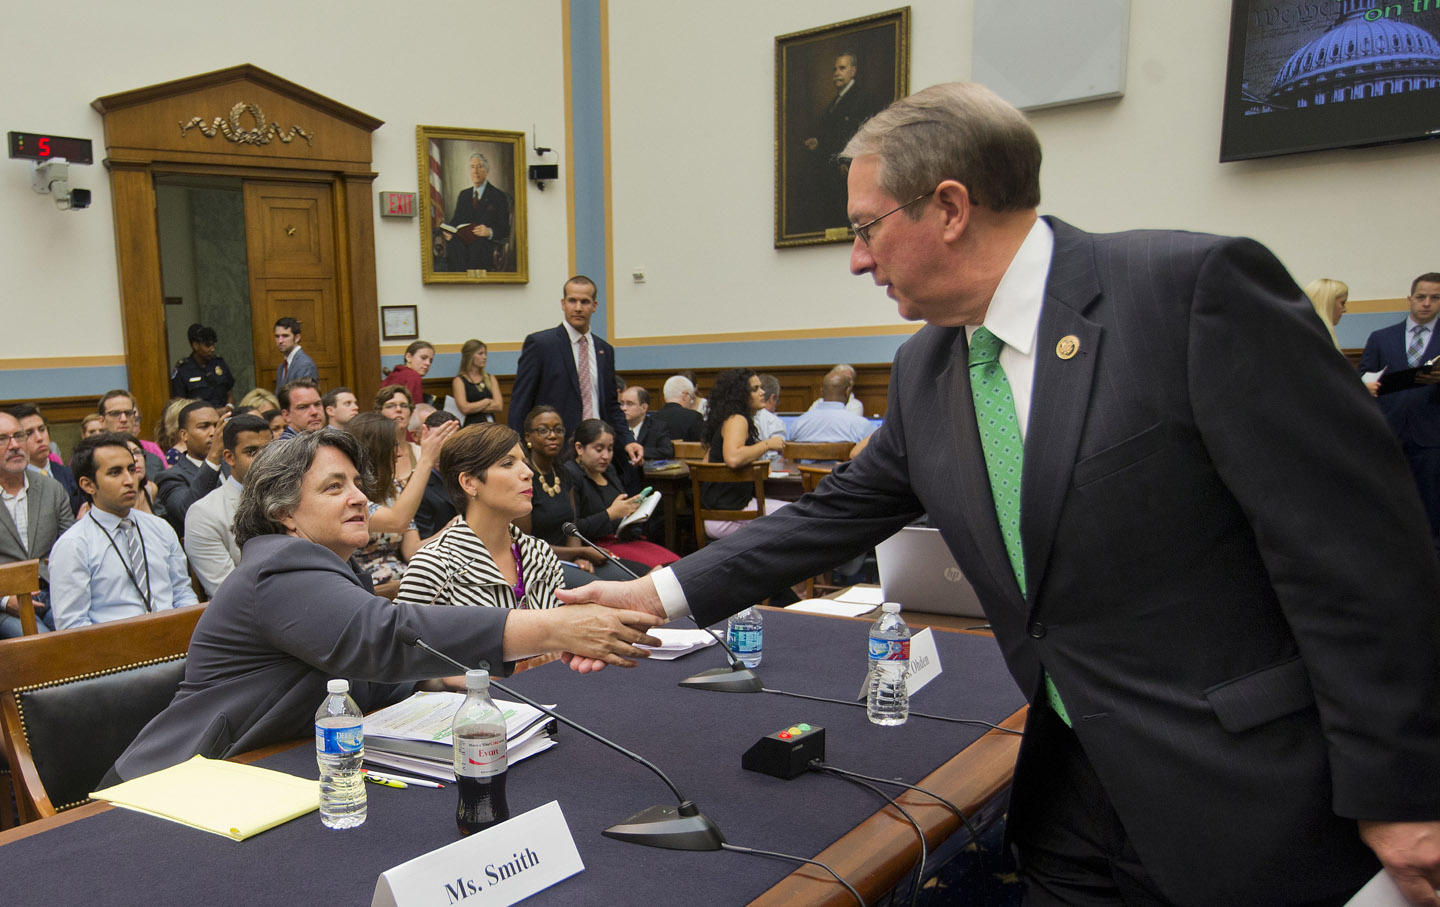 Representative Goodlatte greeting witnesses who appeared at the hearing